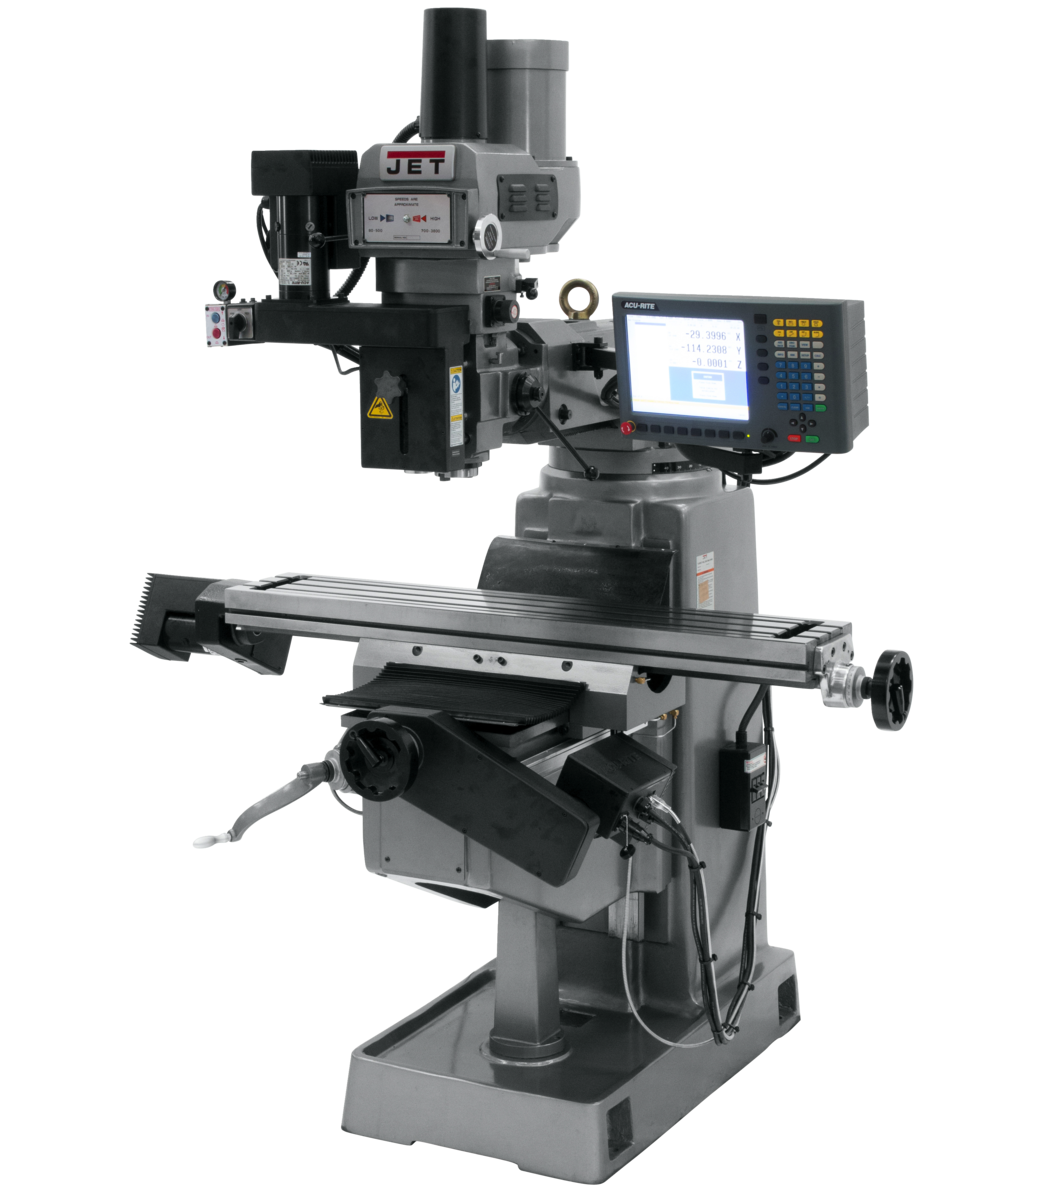 JTM-4VS-1 Mill With 3-Axis ACU-RITE G-2 MILLPWR CNC